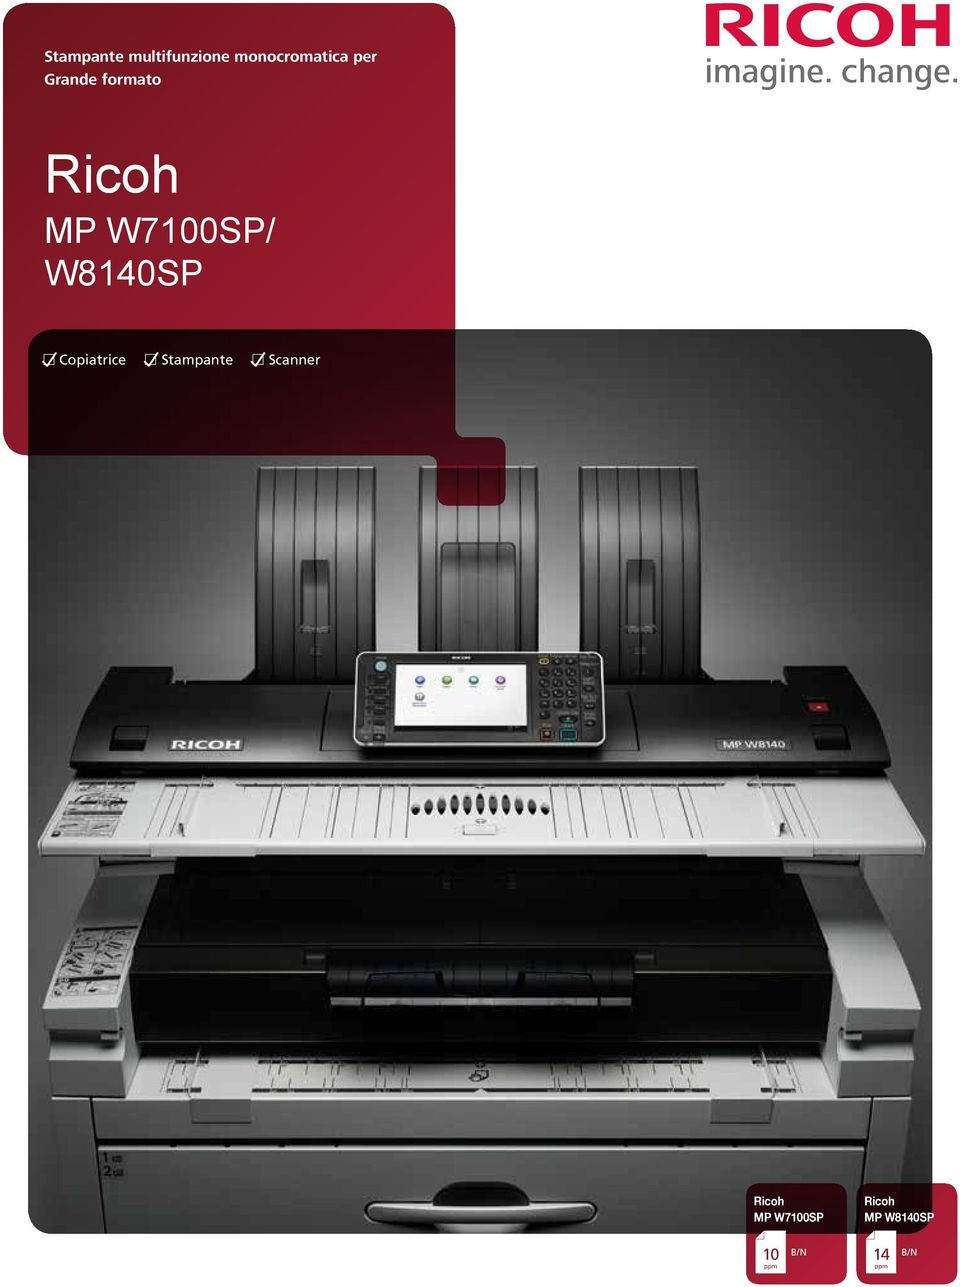 Copiatrice Stampante Scanner Ricoh MP